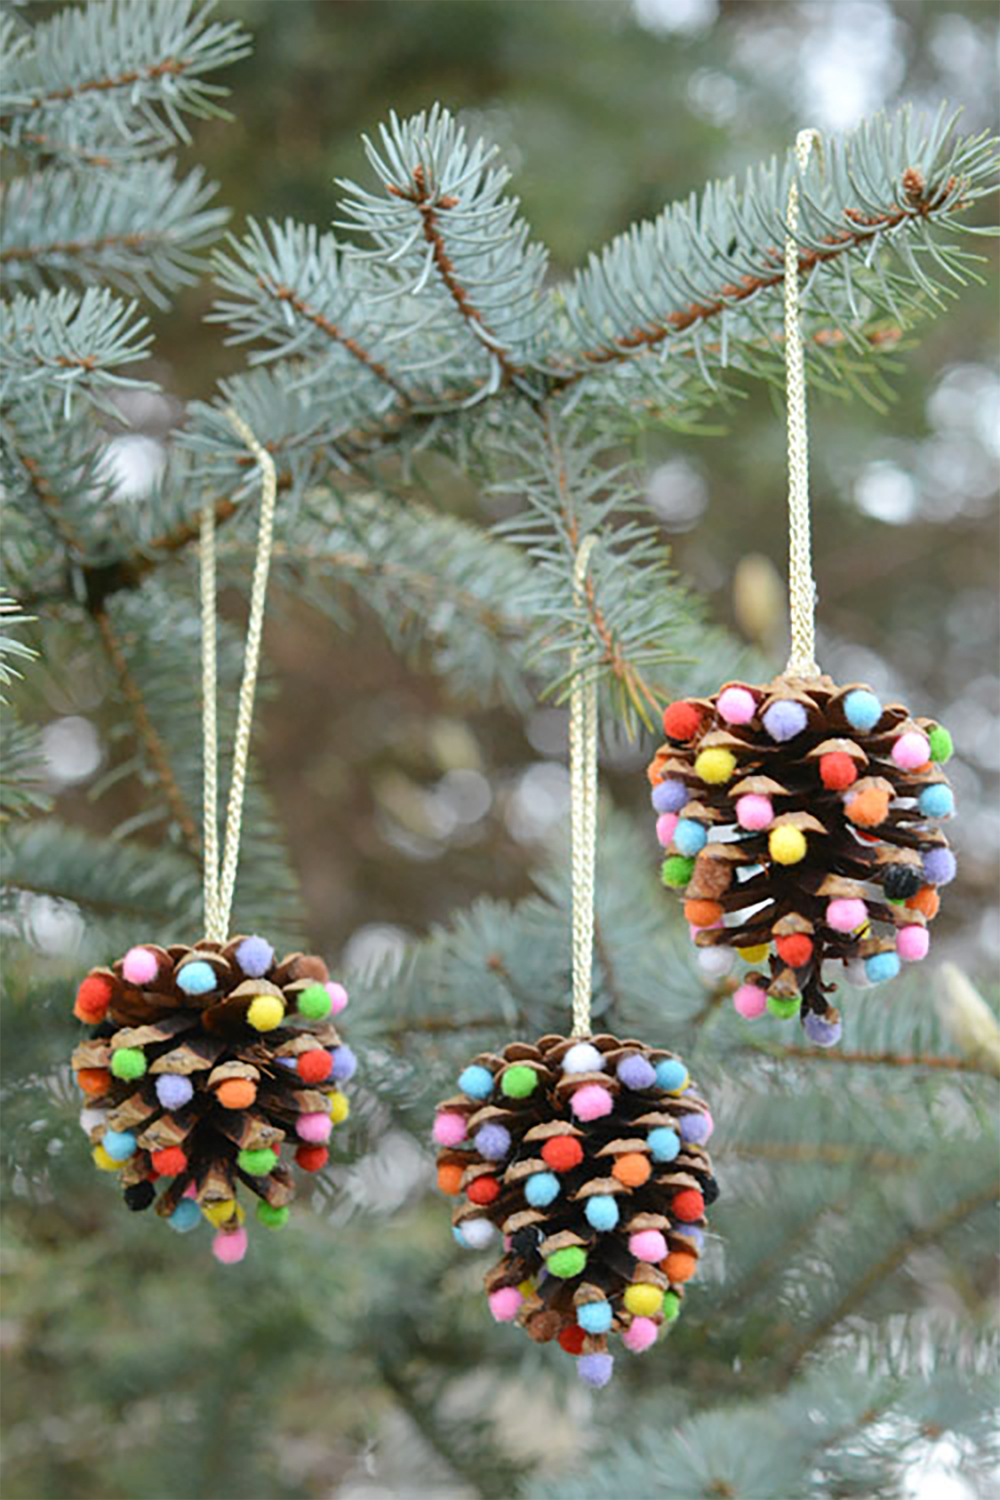 The perfect Christmas gift - DIY pom poms and pinecones | Aliz's Wonderland